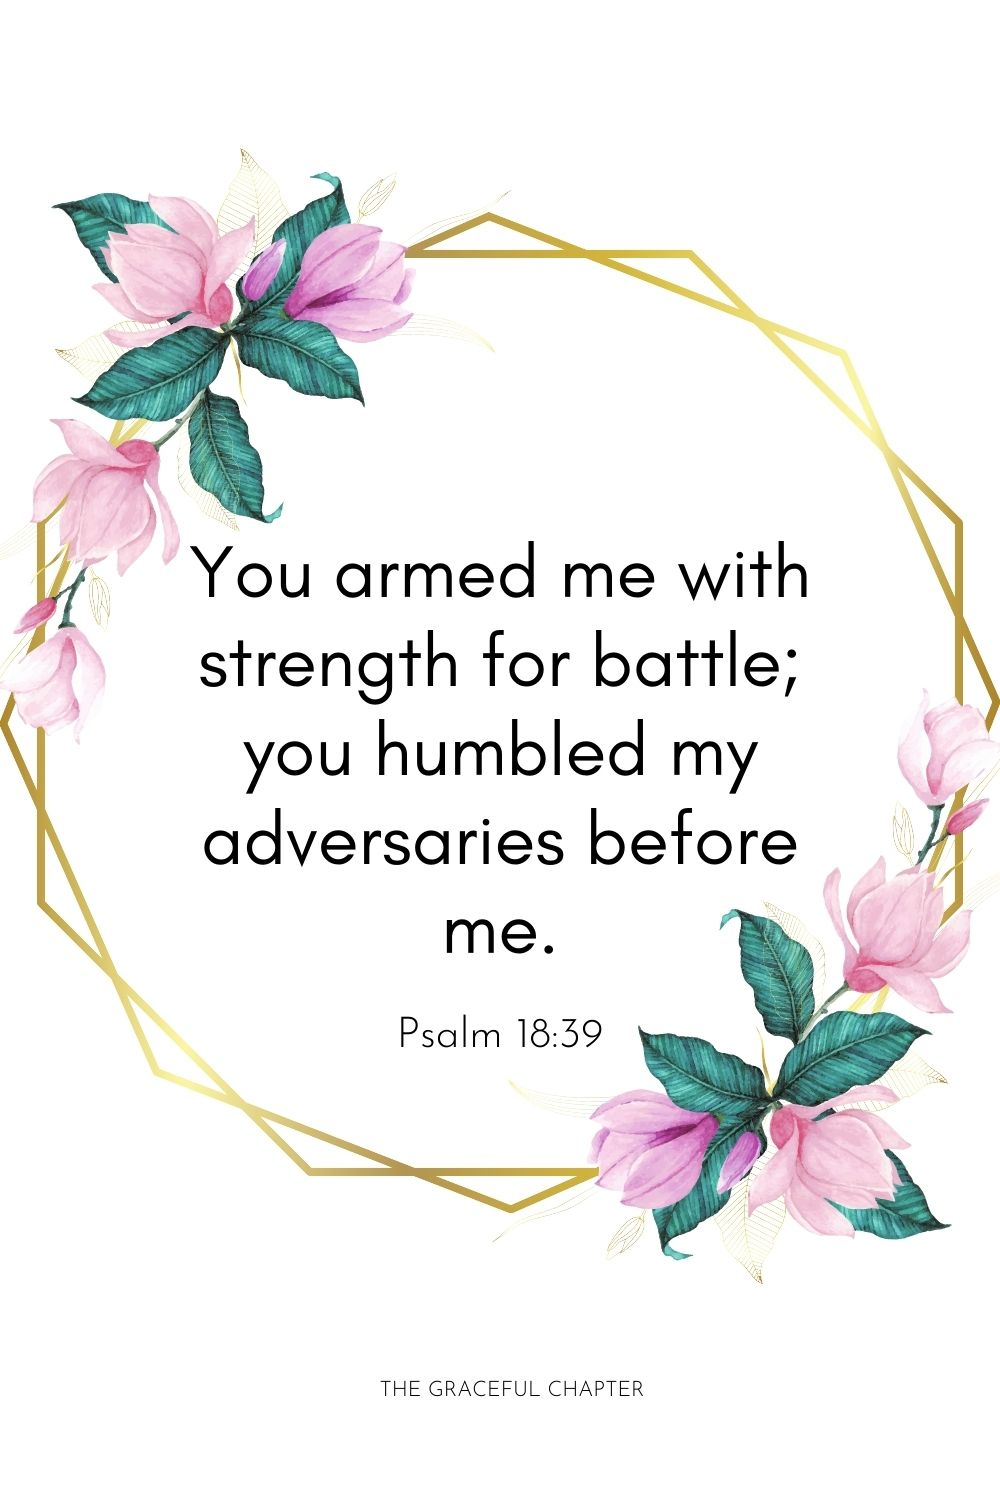 You armed me with strength for battle; you humbled my adversaries before me. Psalm 18:39